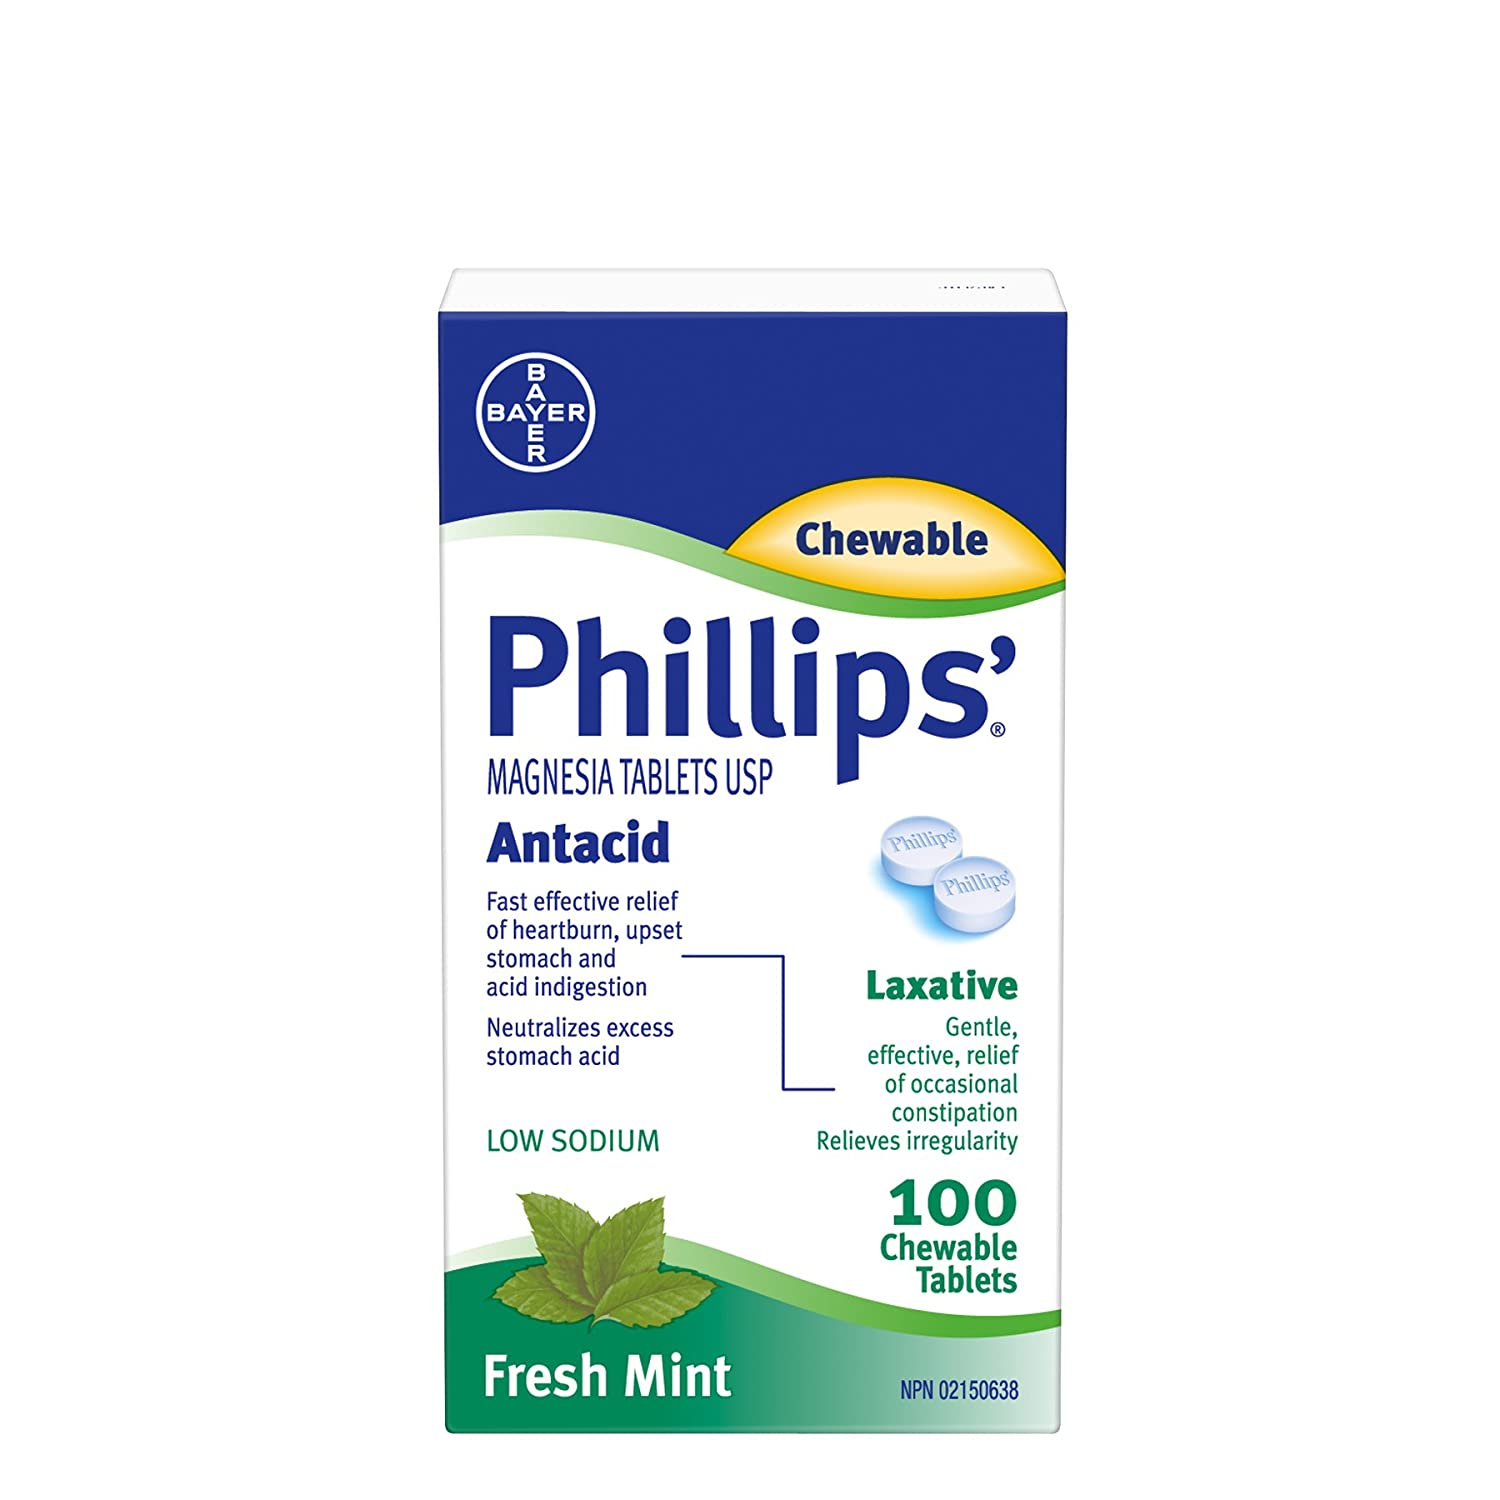 Amazon.com: Phillips Magnesia Tablets Antacid 100 Chewable Tablets Fresh Mint: Health & Personal Care